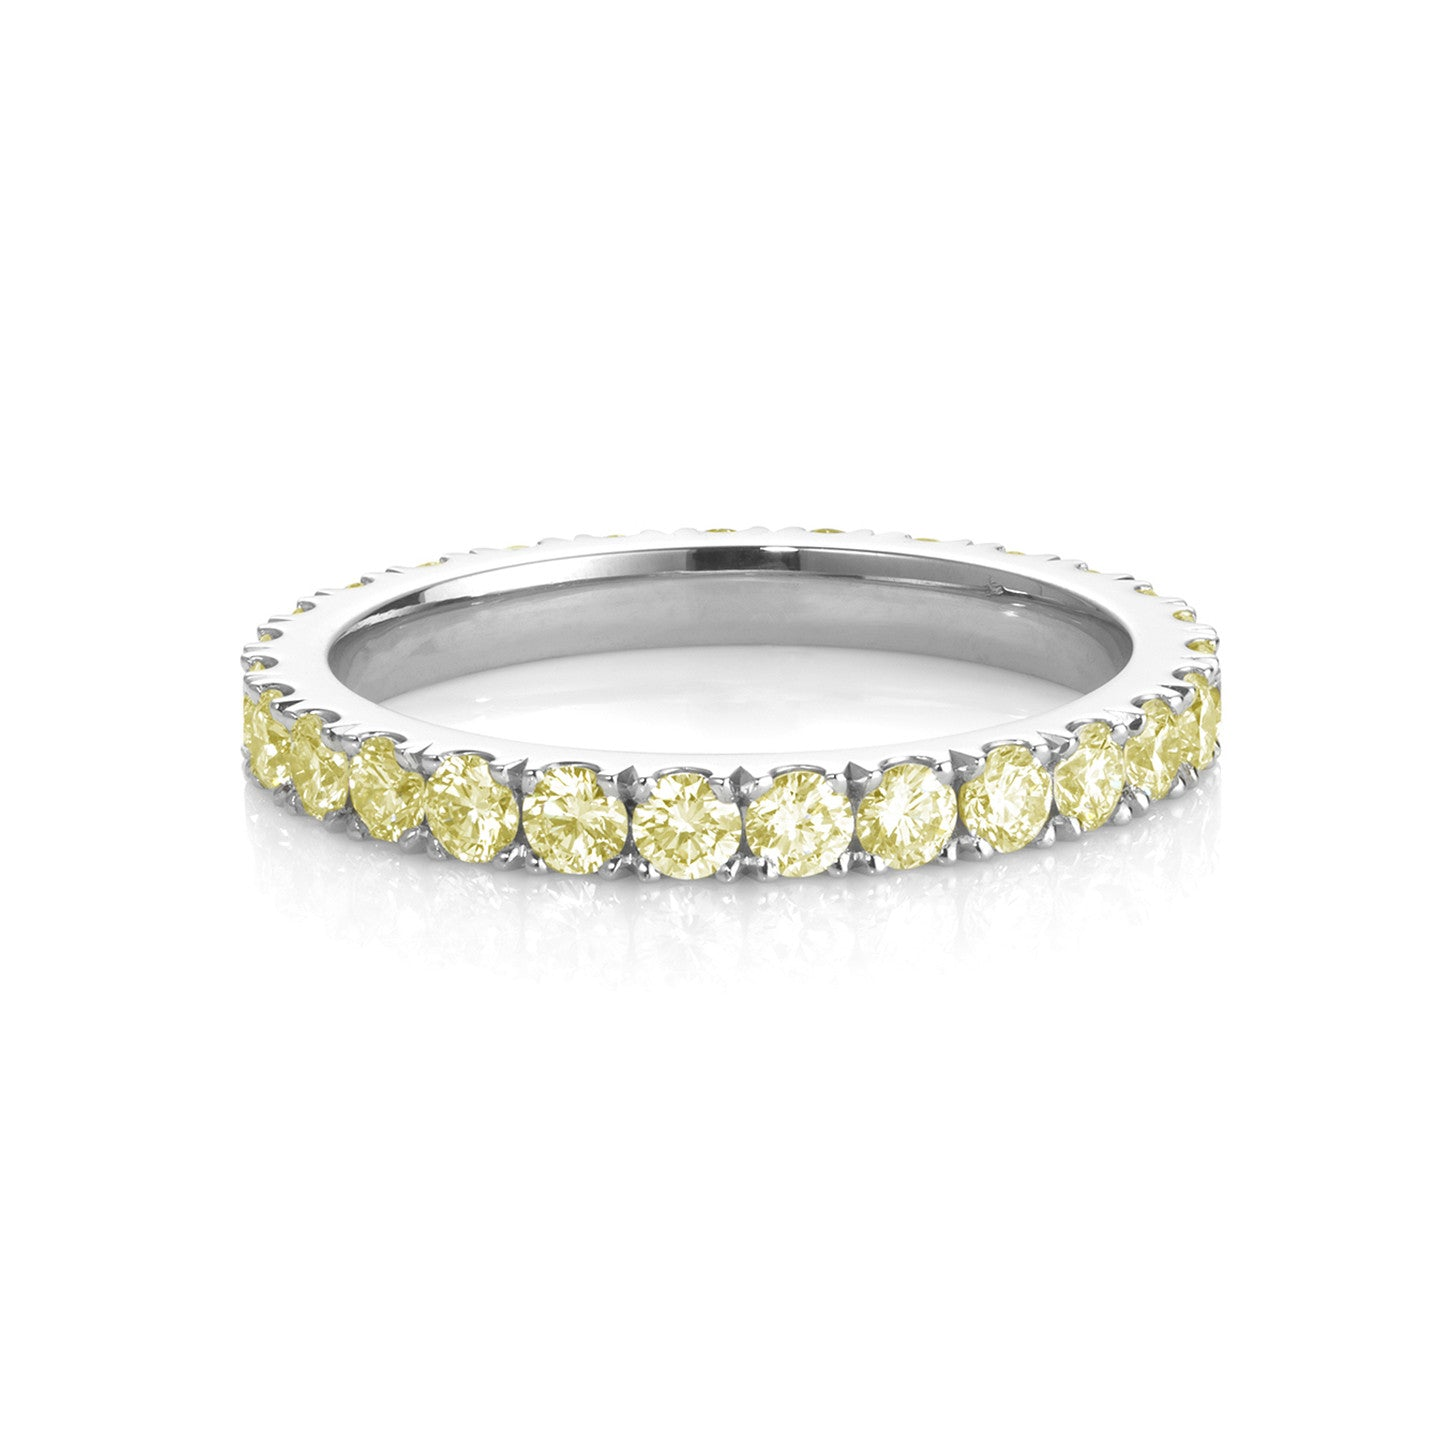 18ct white gold/ platinum with natural mid yellow diamonds